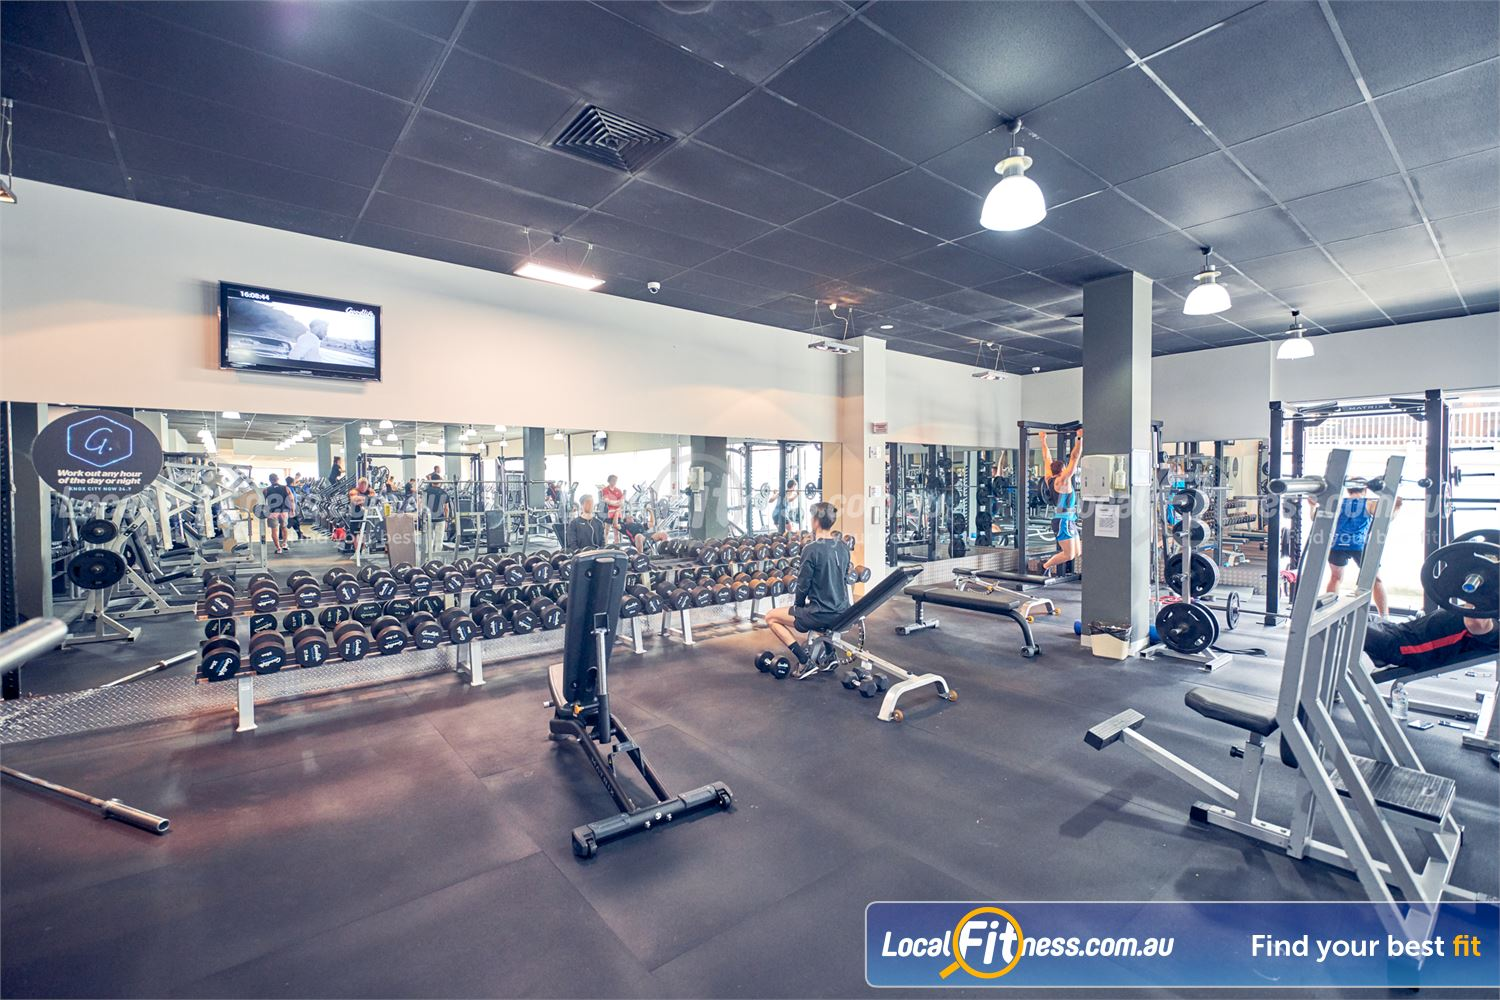 Goodlife Health Clubs Knox City Near Scoresby Our 24 hour Knox City gym includes a fully equipped free-weights area.